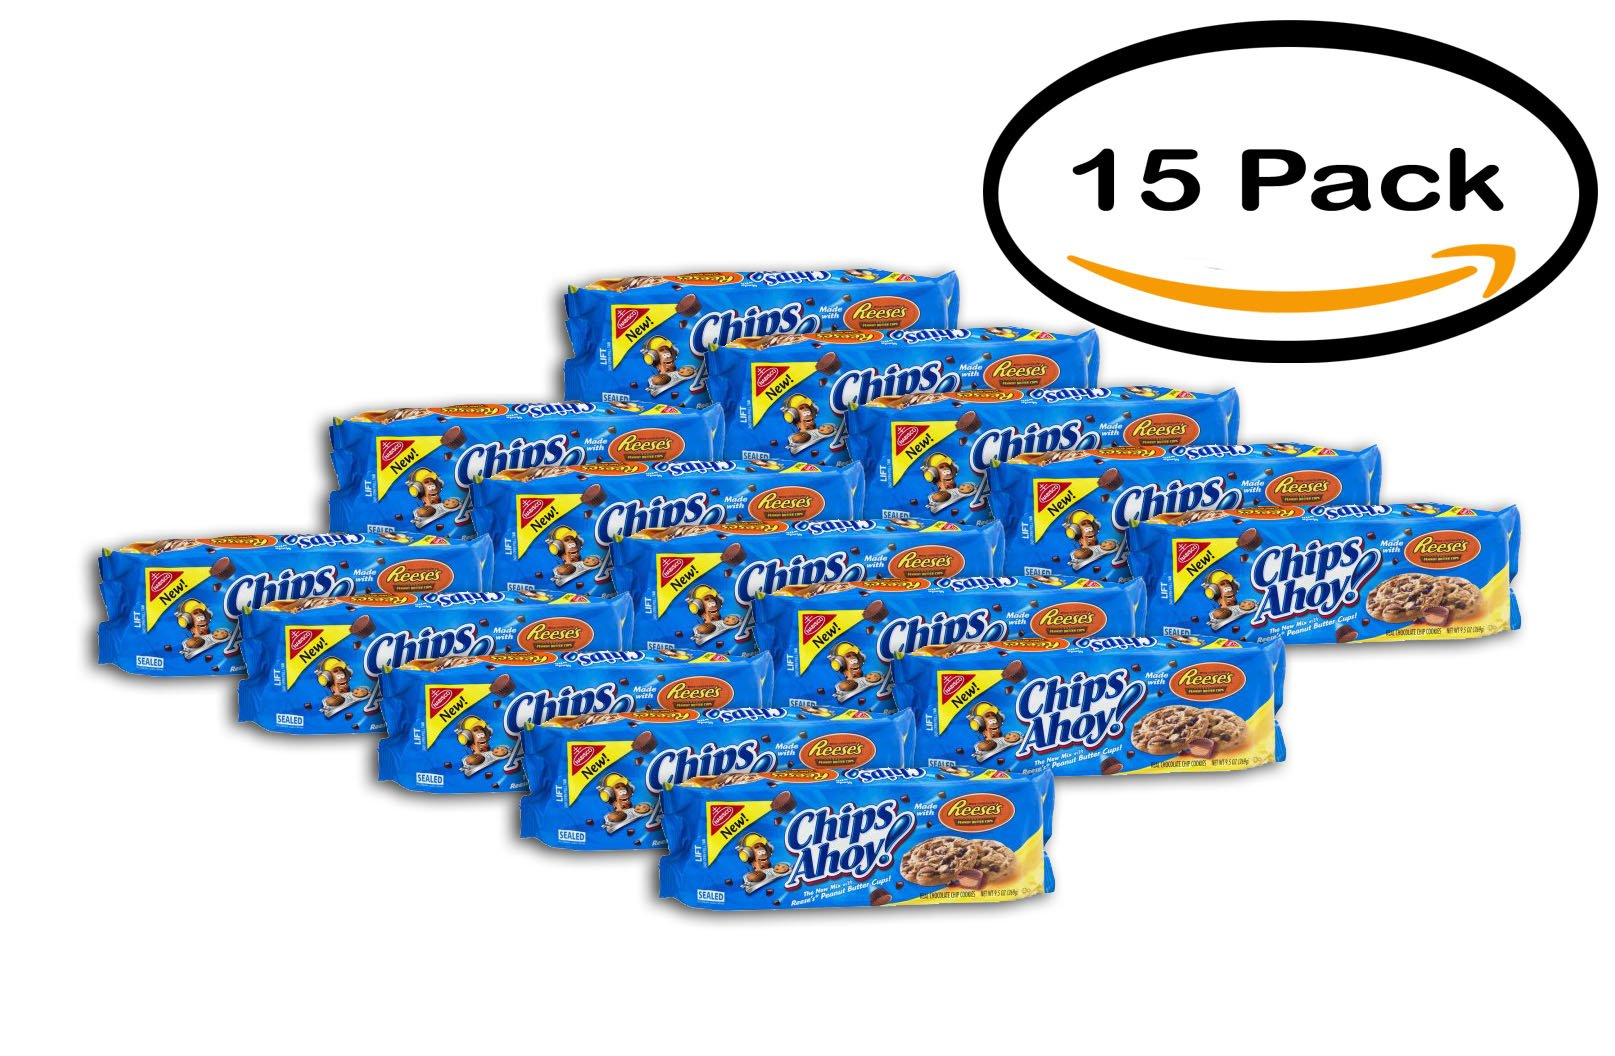 PACK OF 15 - Nabisco Chips Ahoy! Reese's Peanut Butter Cups Cookies, 9.5 OZ by Chips Ahoy!